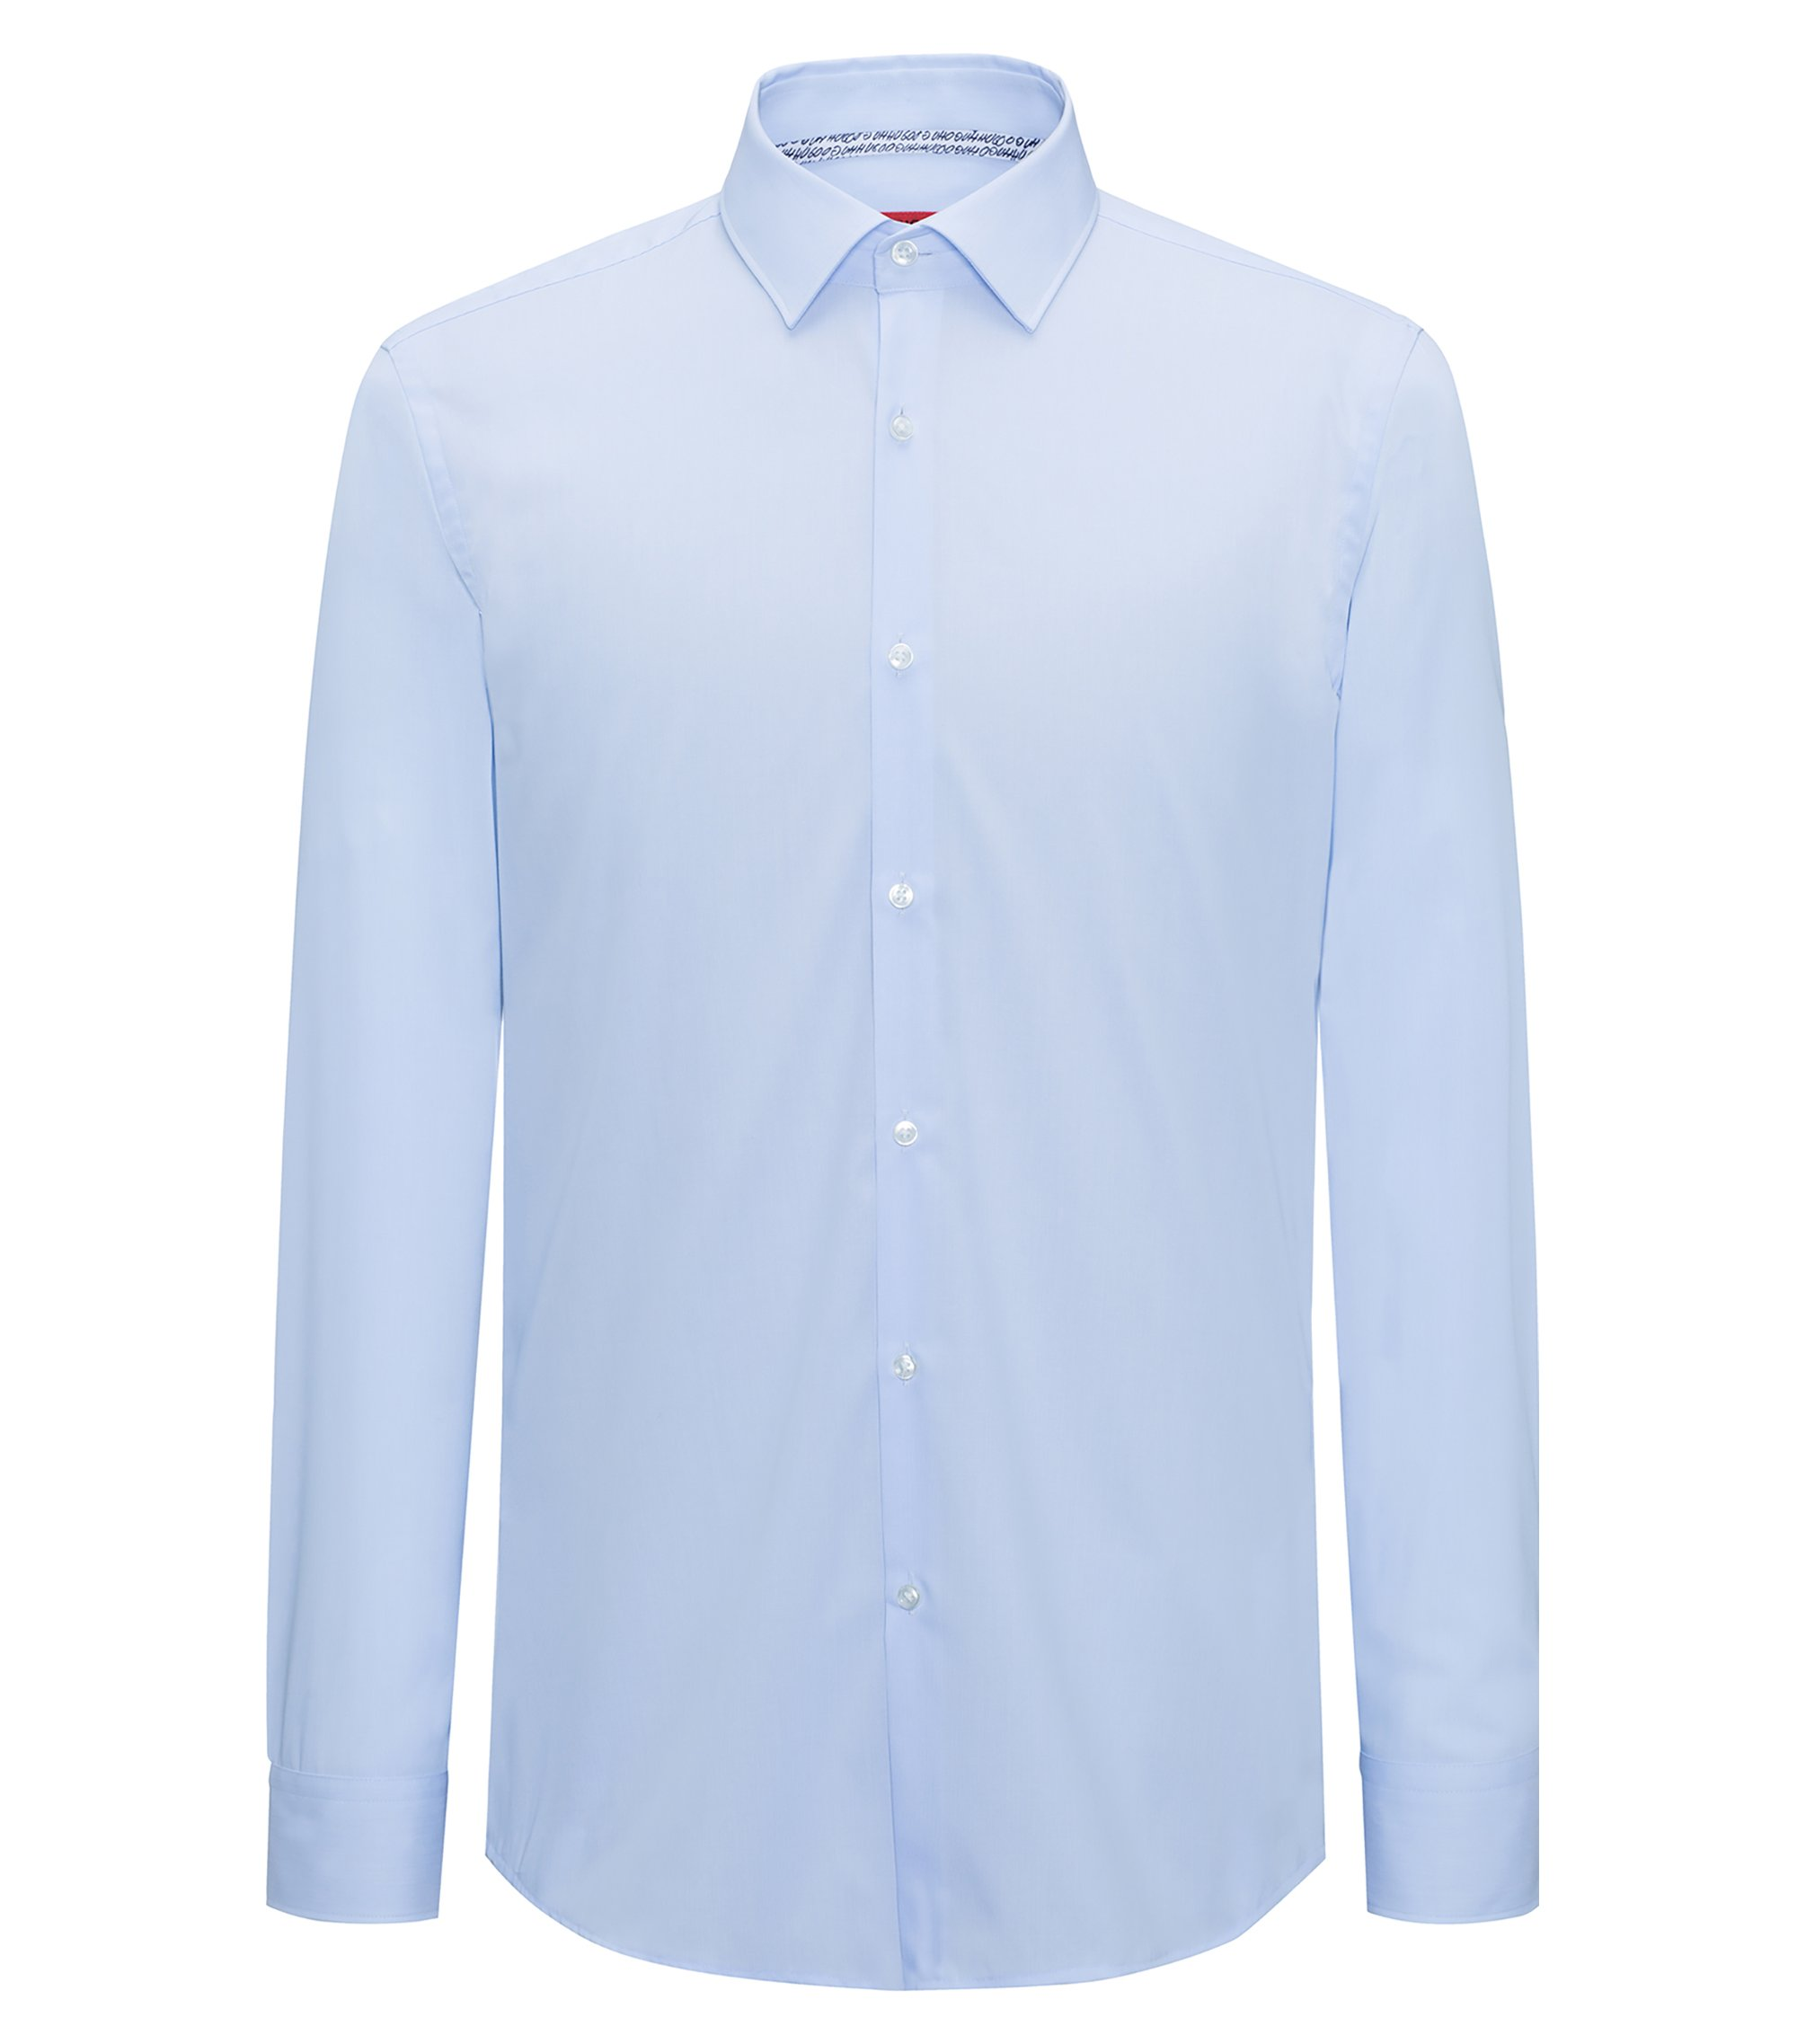 Camicia slim fit a righine in popeline di cotone facile da stirare, Celeste